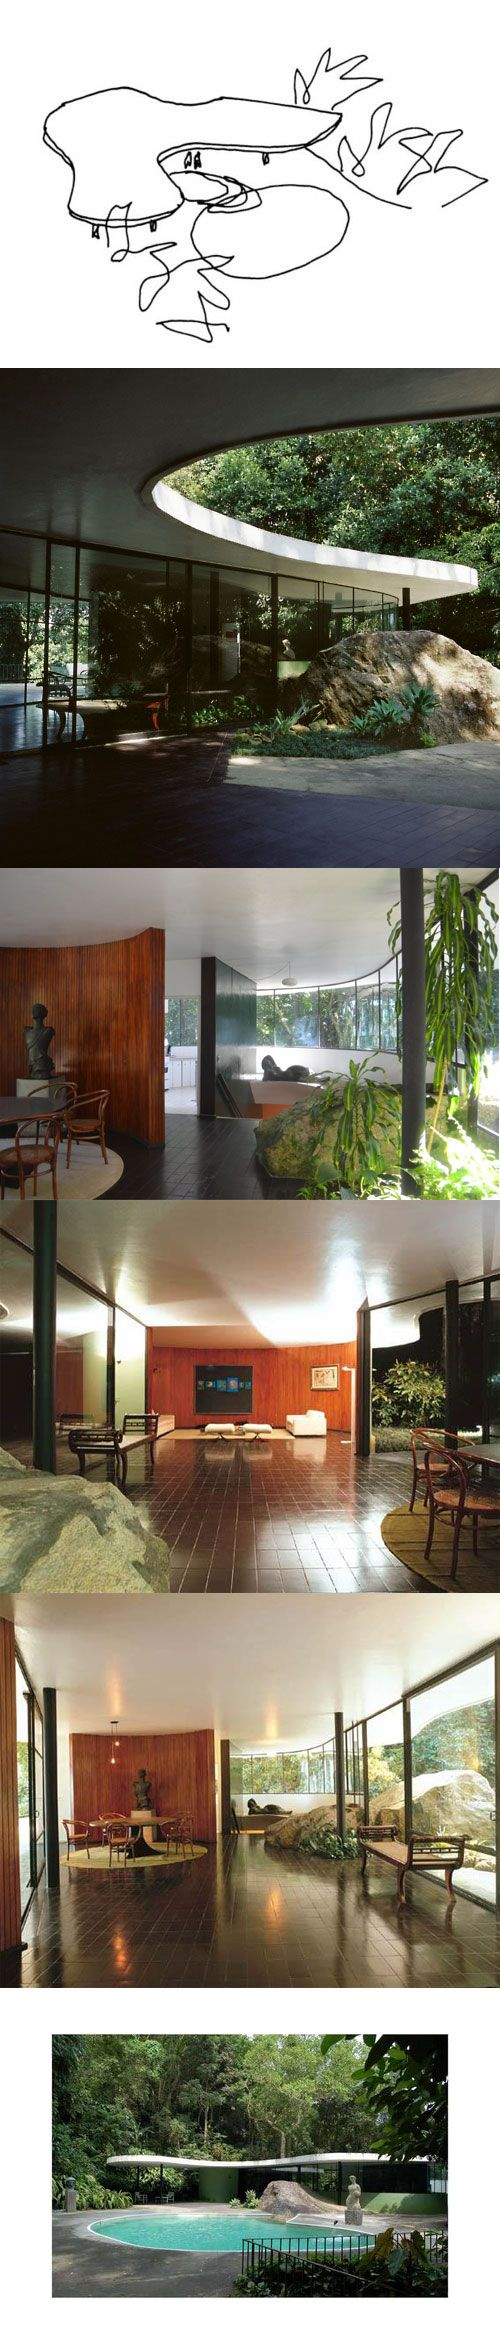 Anderson cooper s brazilian rest house is a vintage and rustic dream - In Modernist Architect Oscar Niemeyer Designed And Built His Own Residence Casa Das Canoas In Rio De Janeiro Brazil